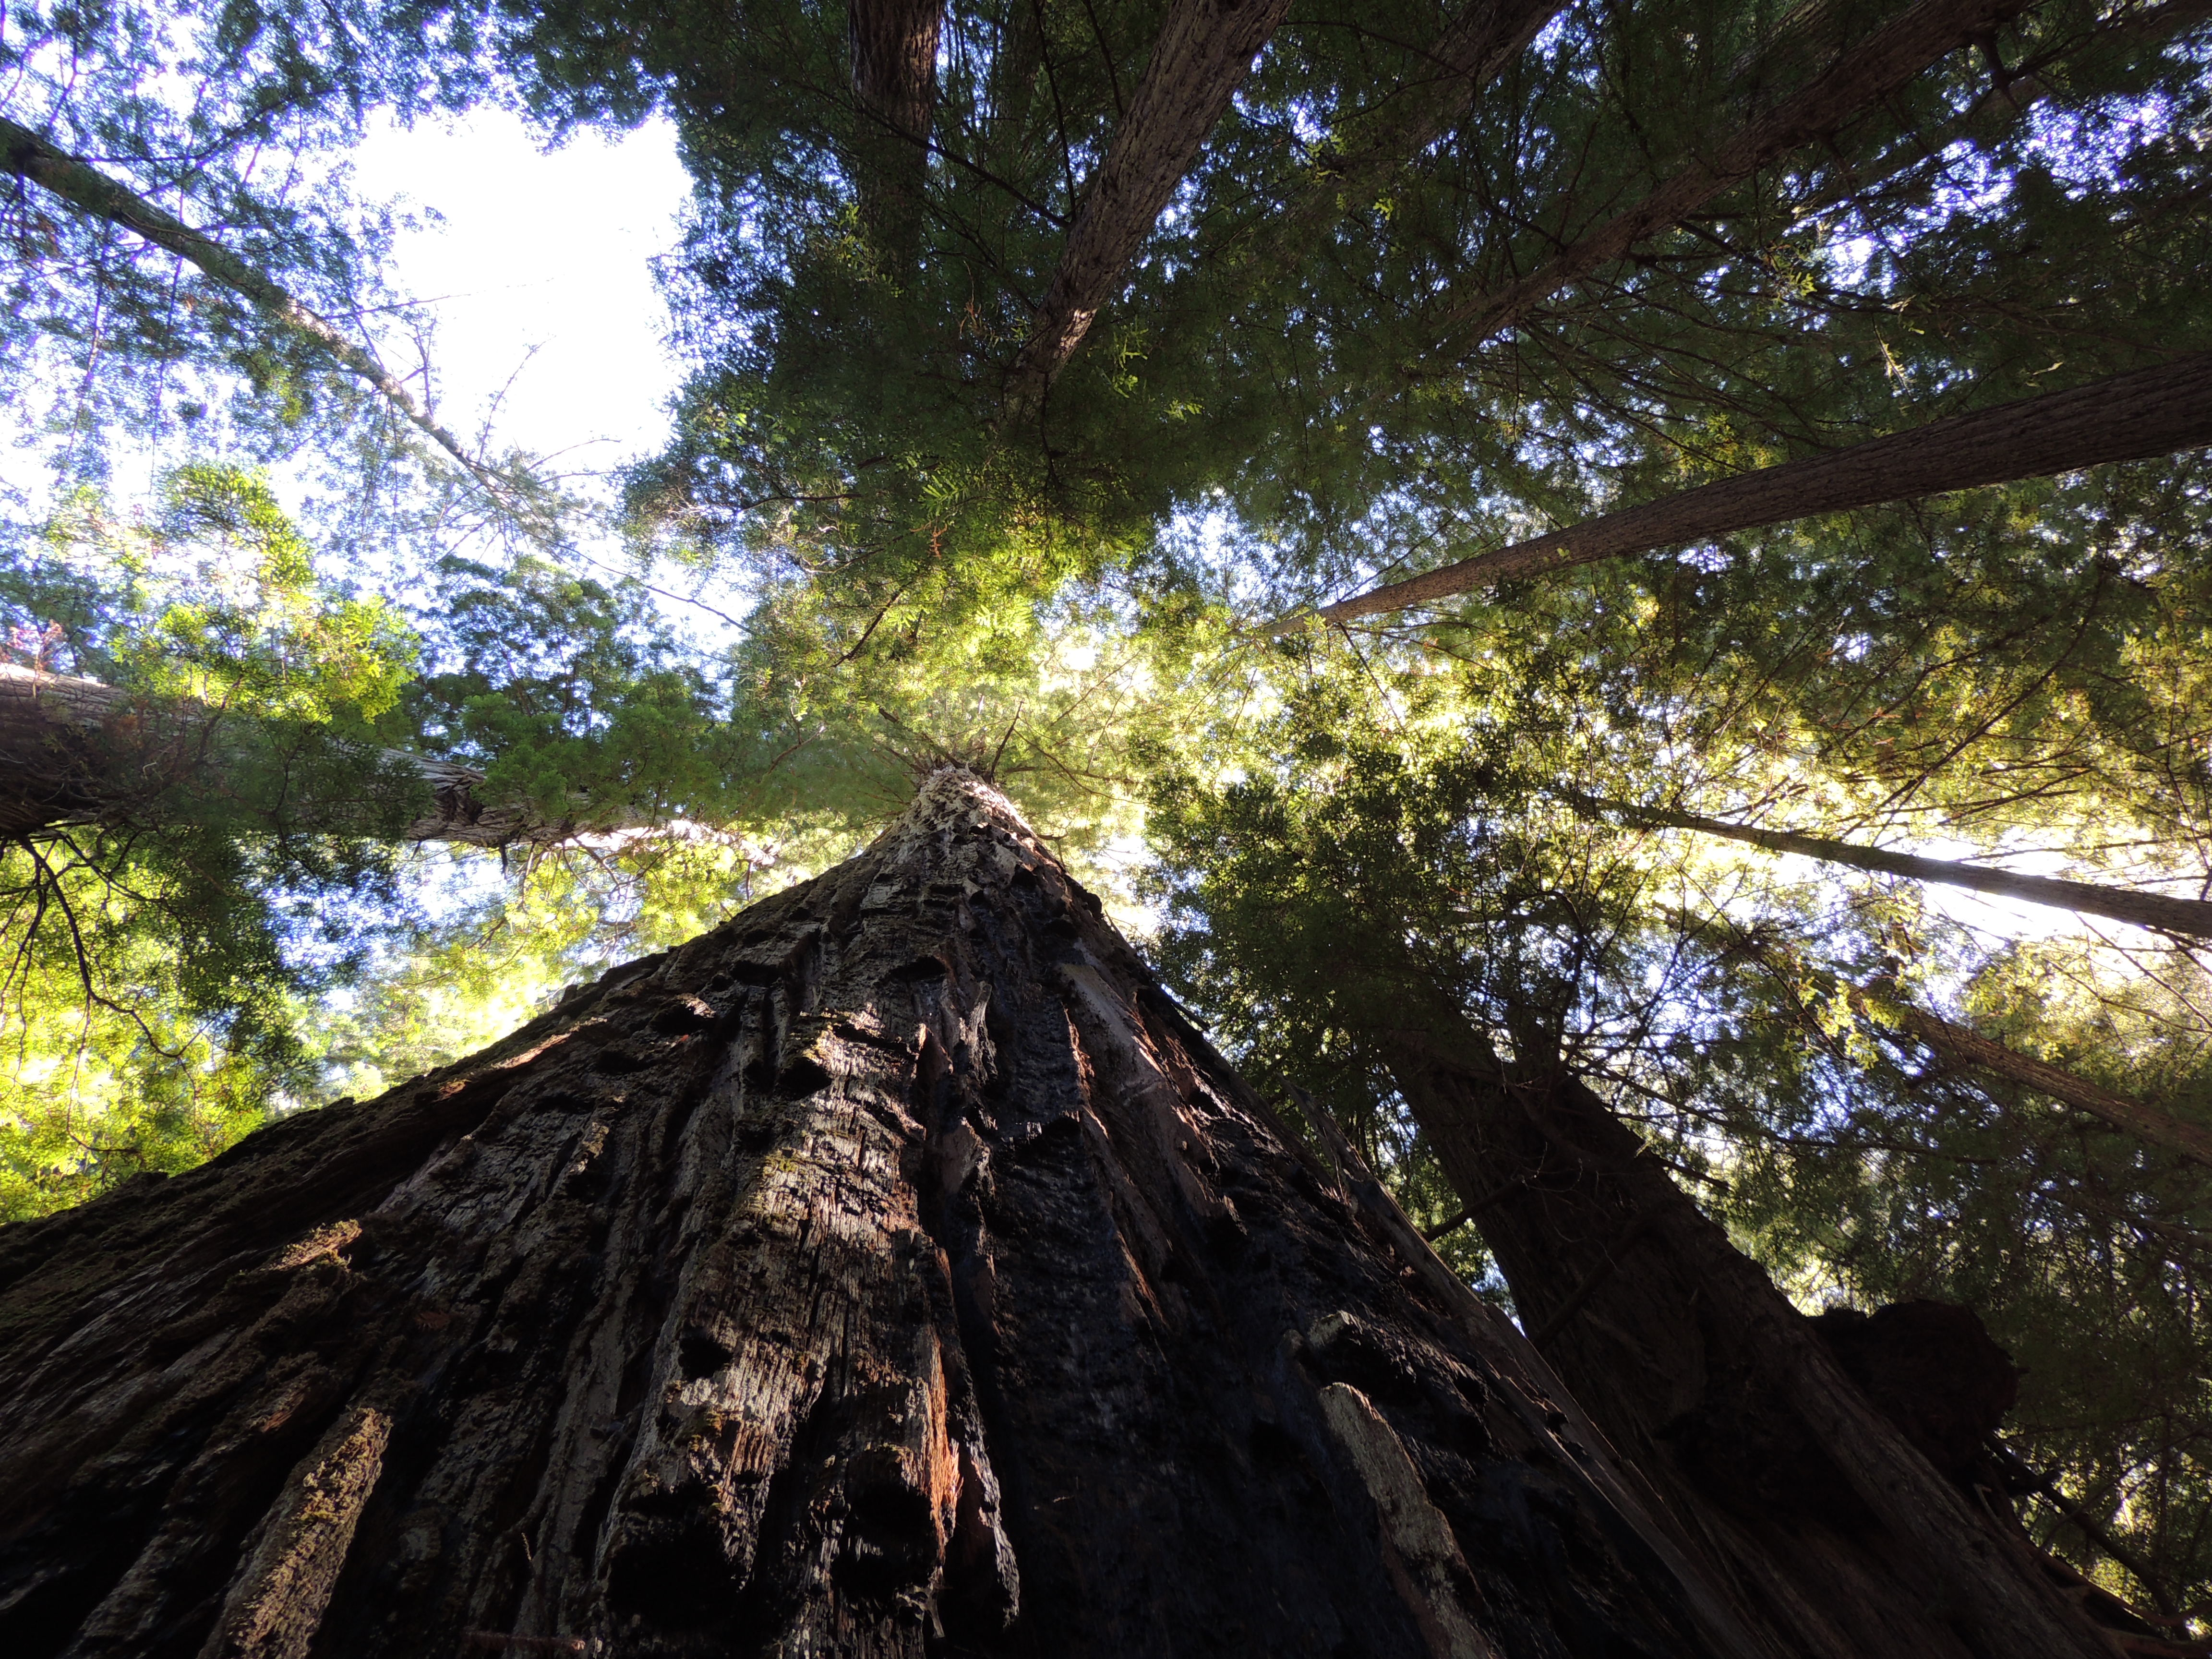 Looking upward through the branches of a stand of Sequoia Sempervirens